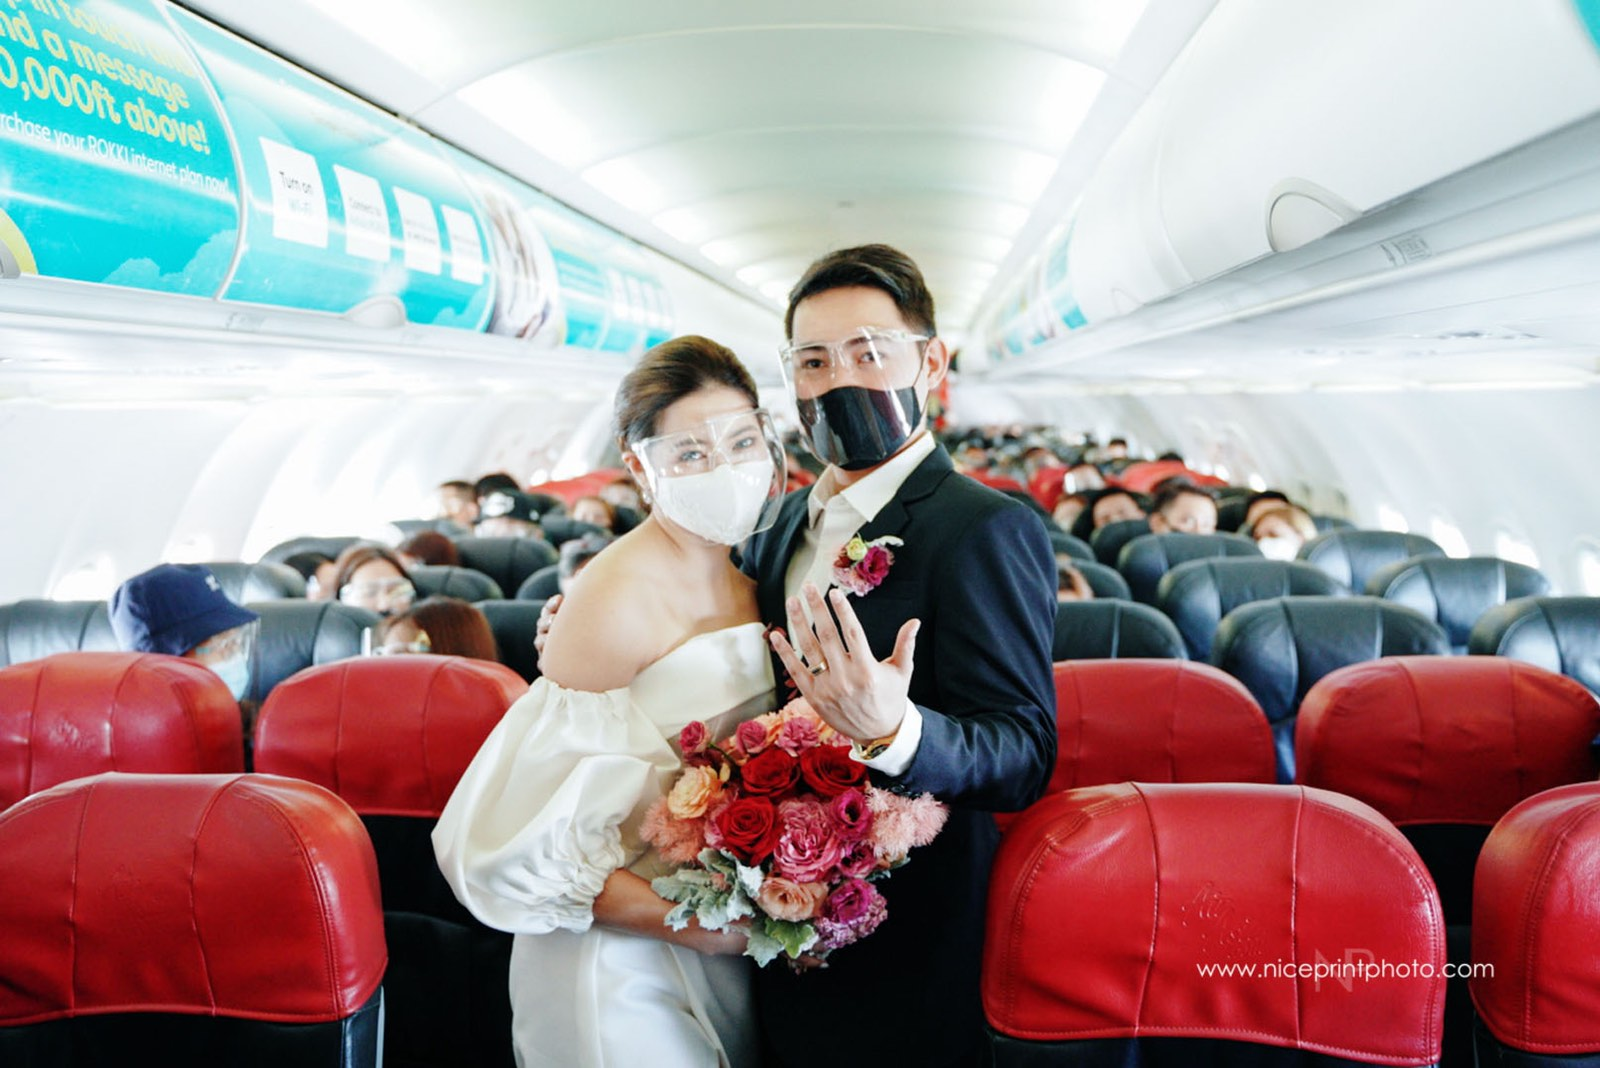 wedding of two flight attendants during a commercial flight: married couple